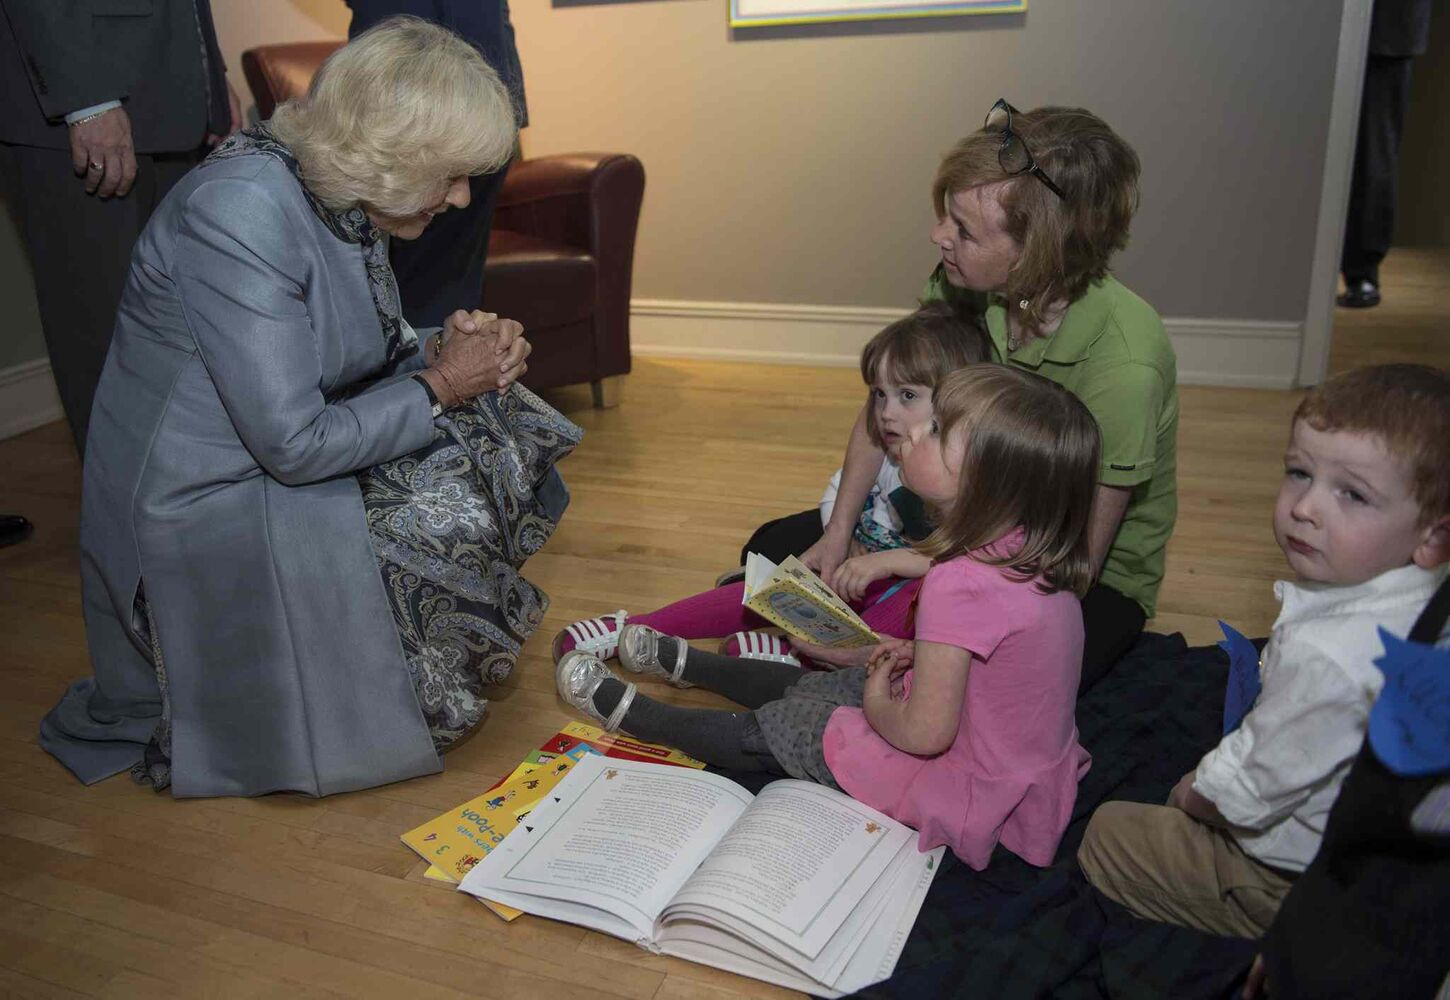 Camilla, the Duchess of Cornwall, meets a group of children at the Pooh Gallery. (Paul Chiasson / The Canadian Press)